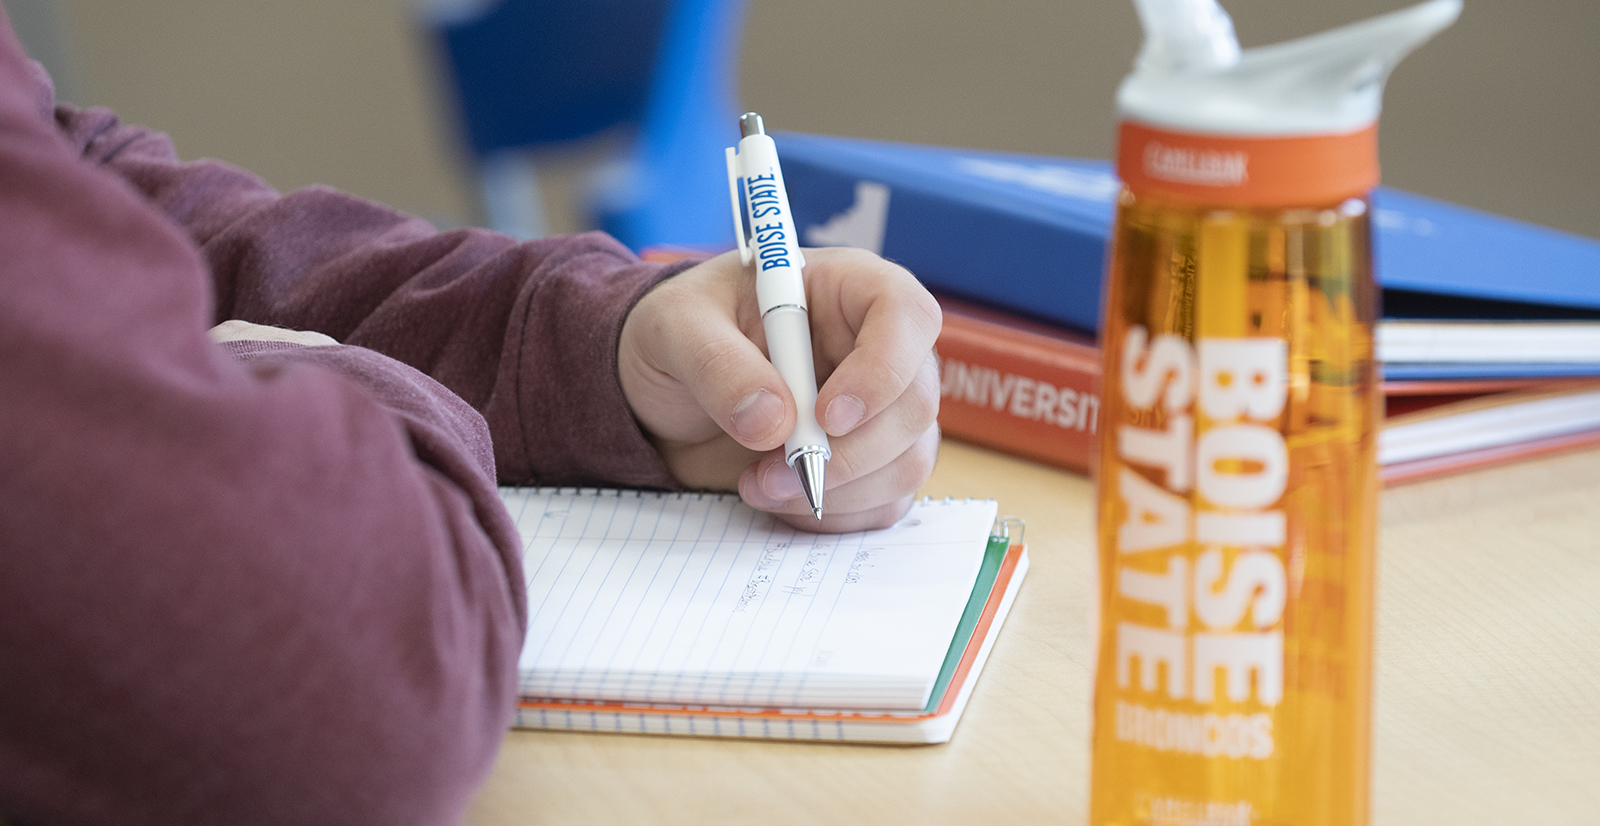 Branded stock images, studying, by Priscilla Grover